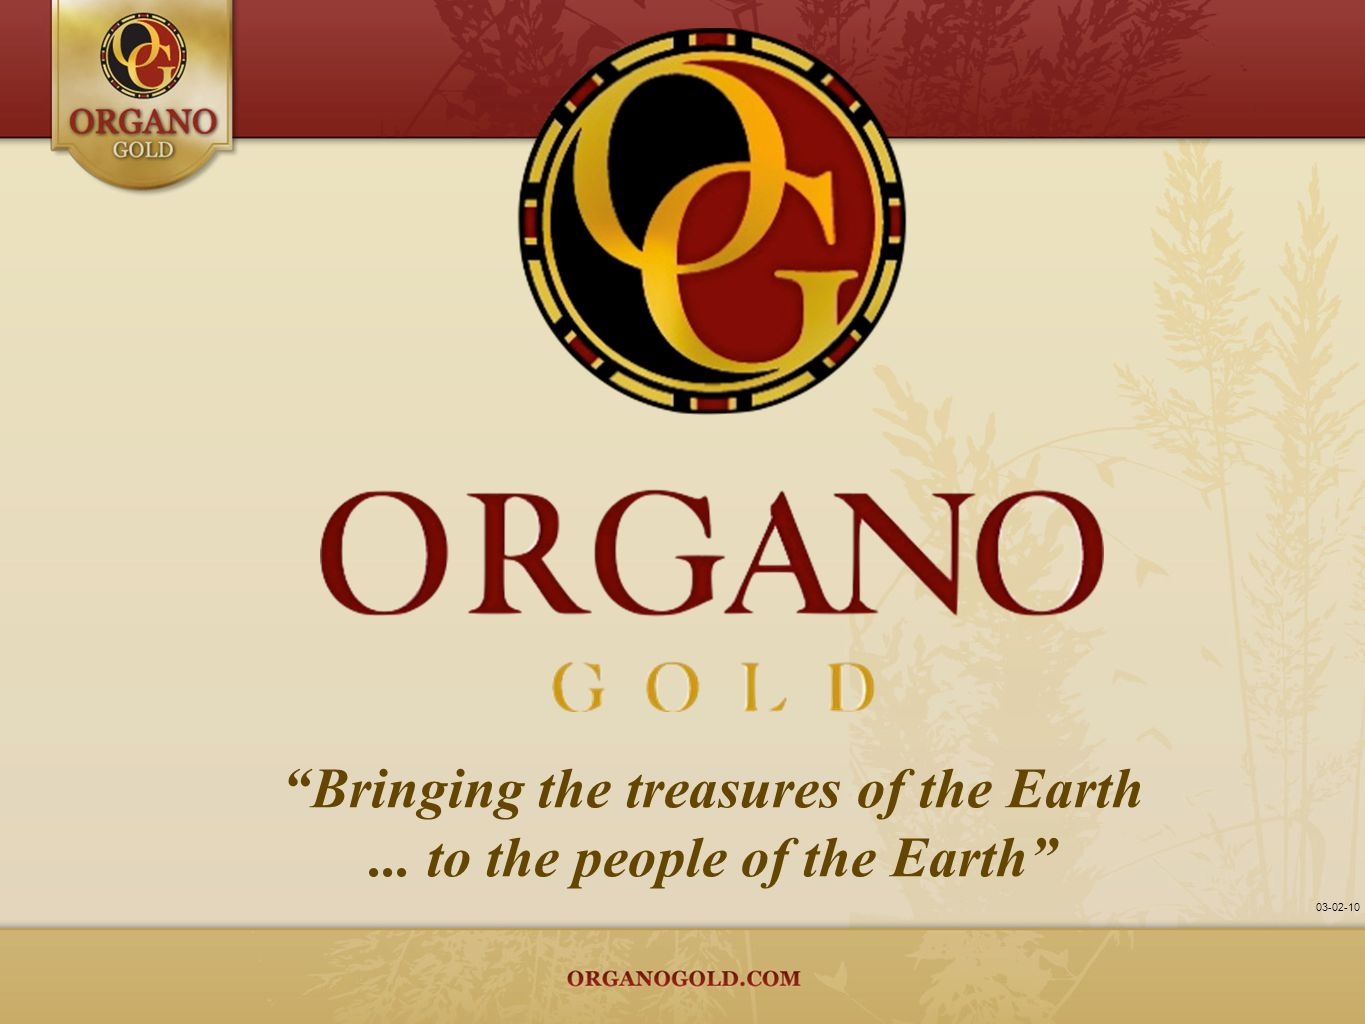 Bringing the treasures of the Earth ... to the people of the Earth